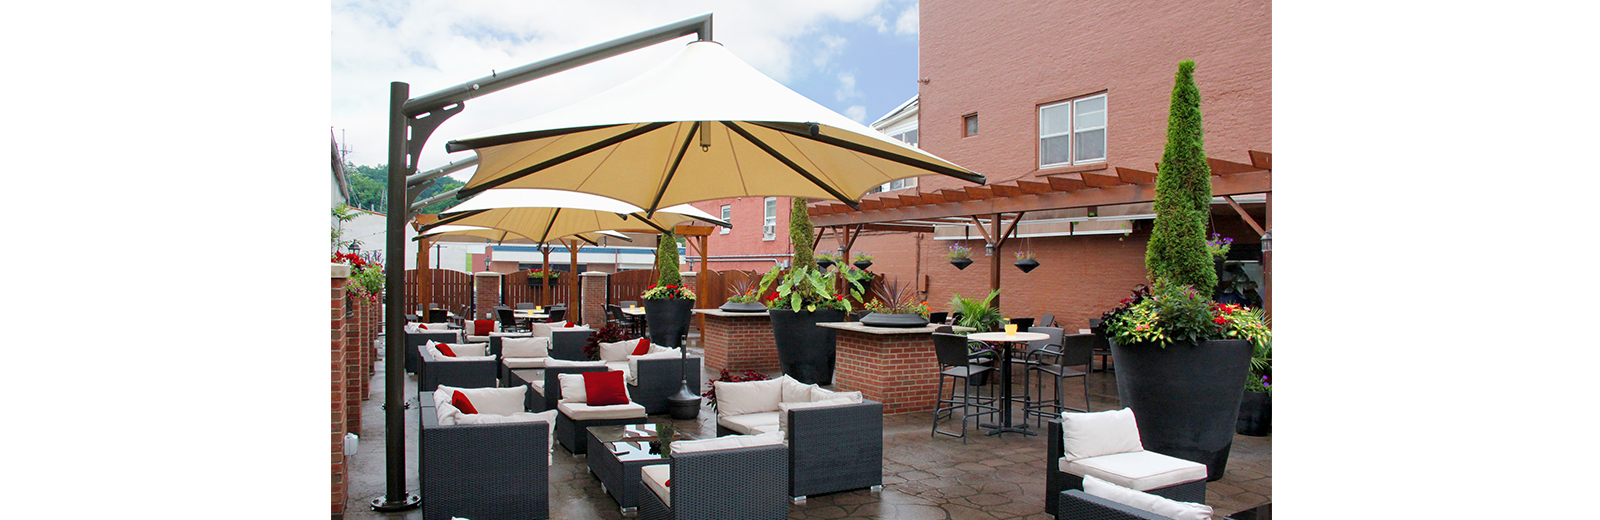 Patio Shade for Restaurants